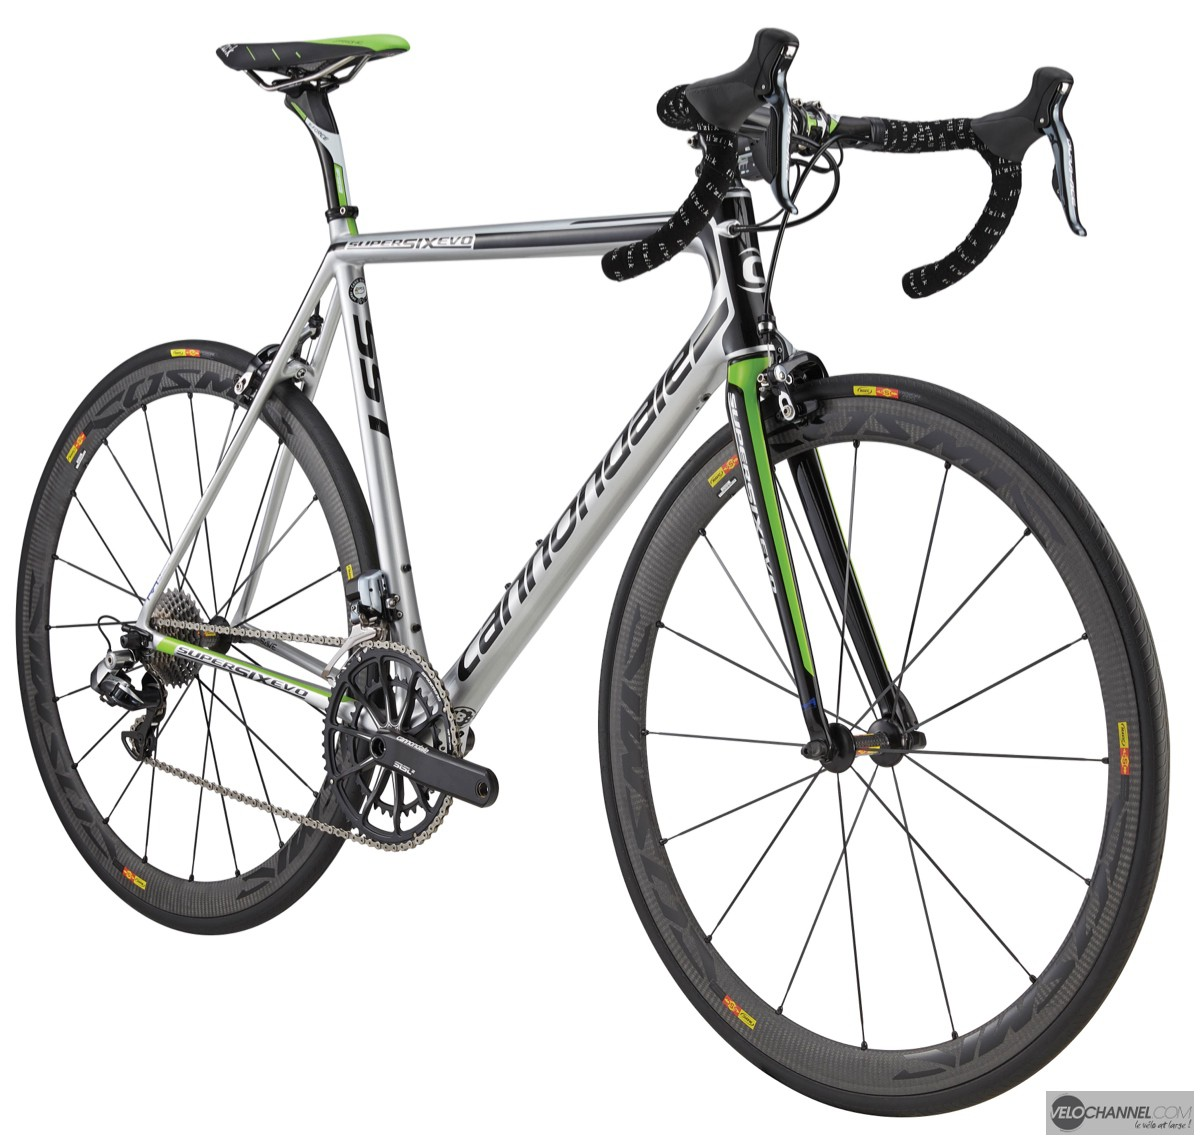 Cannondale_SuperSix-Evo-Hi-MOD-Team-HERO